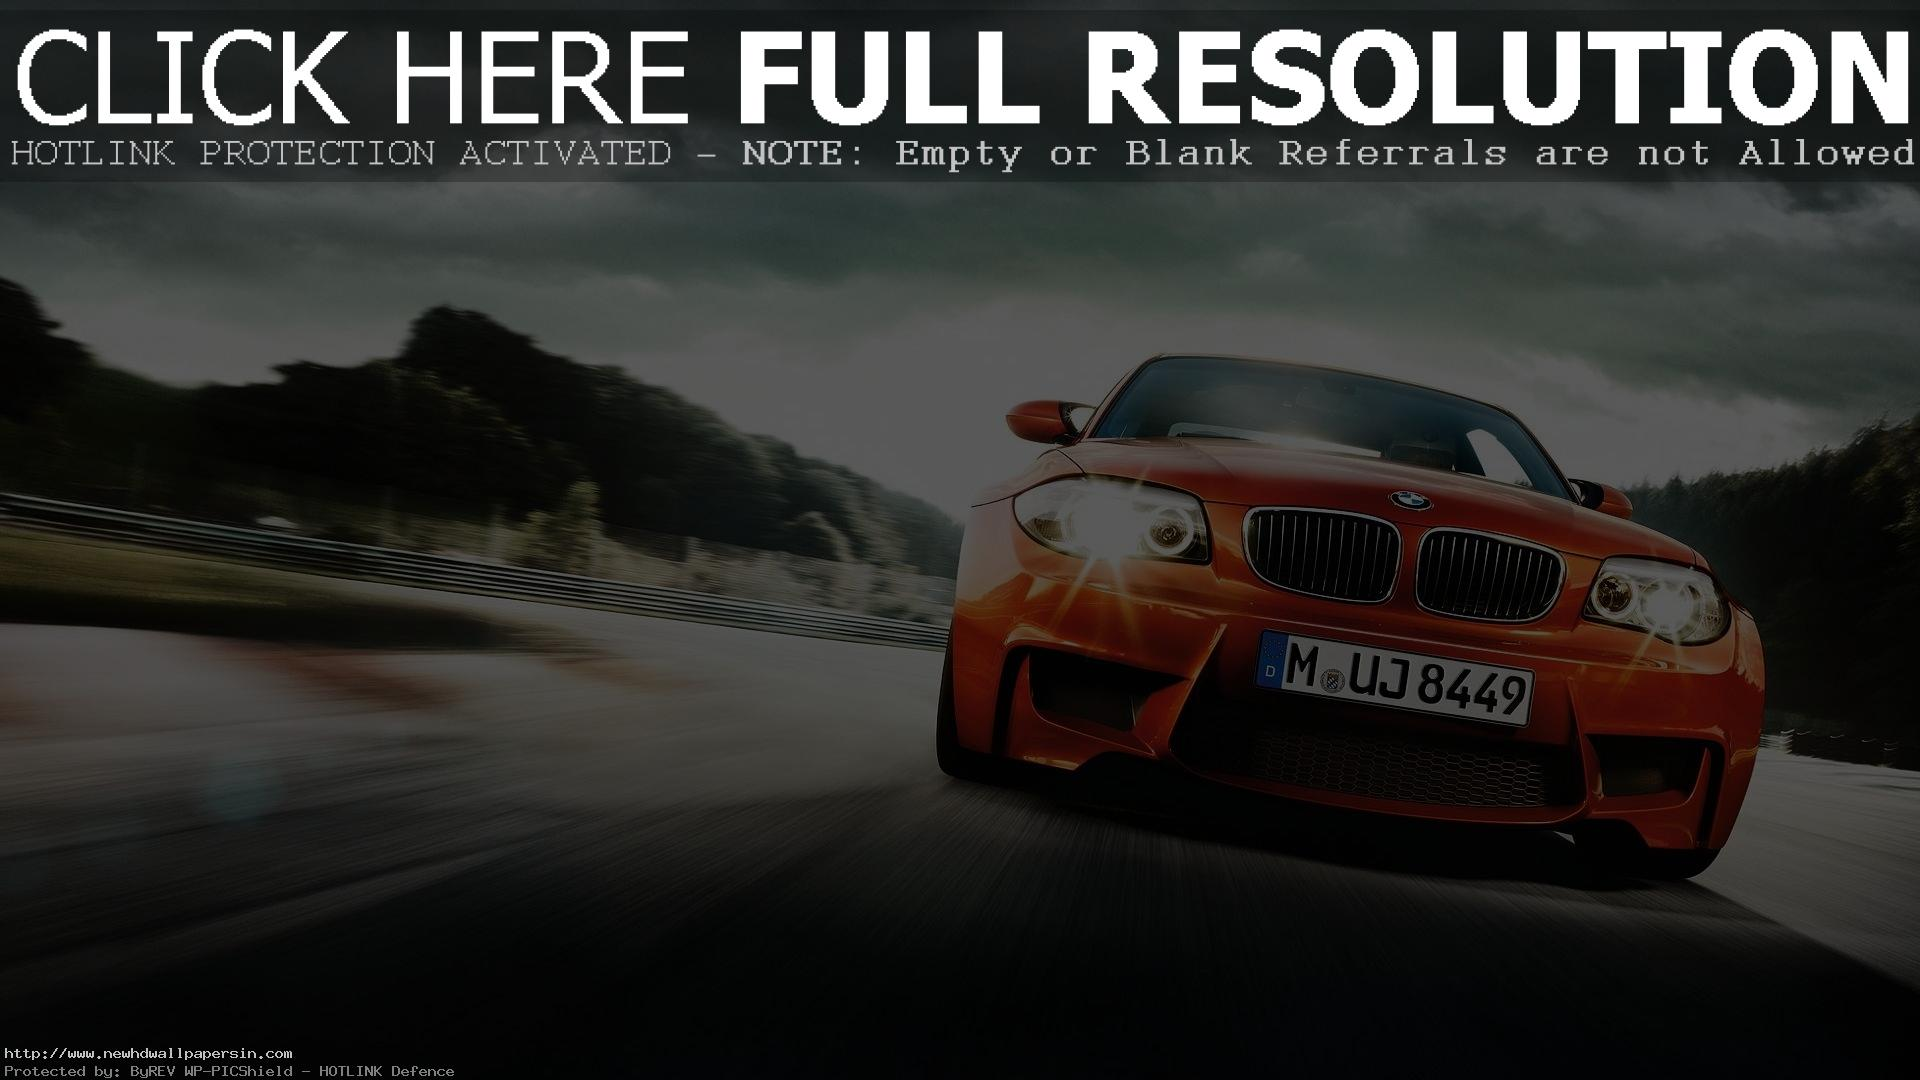 Wallpaper HD Bmw Cars